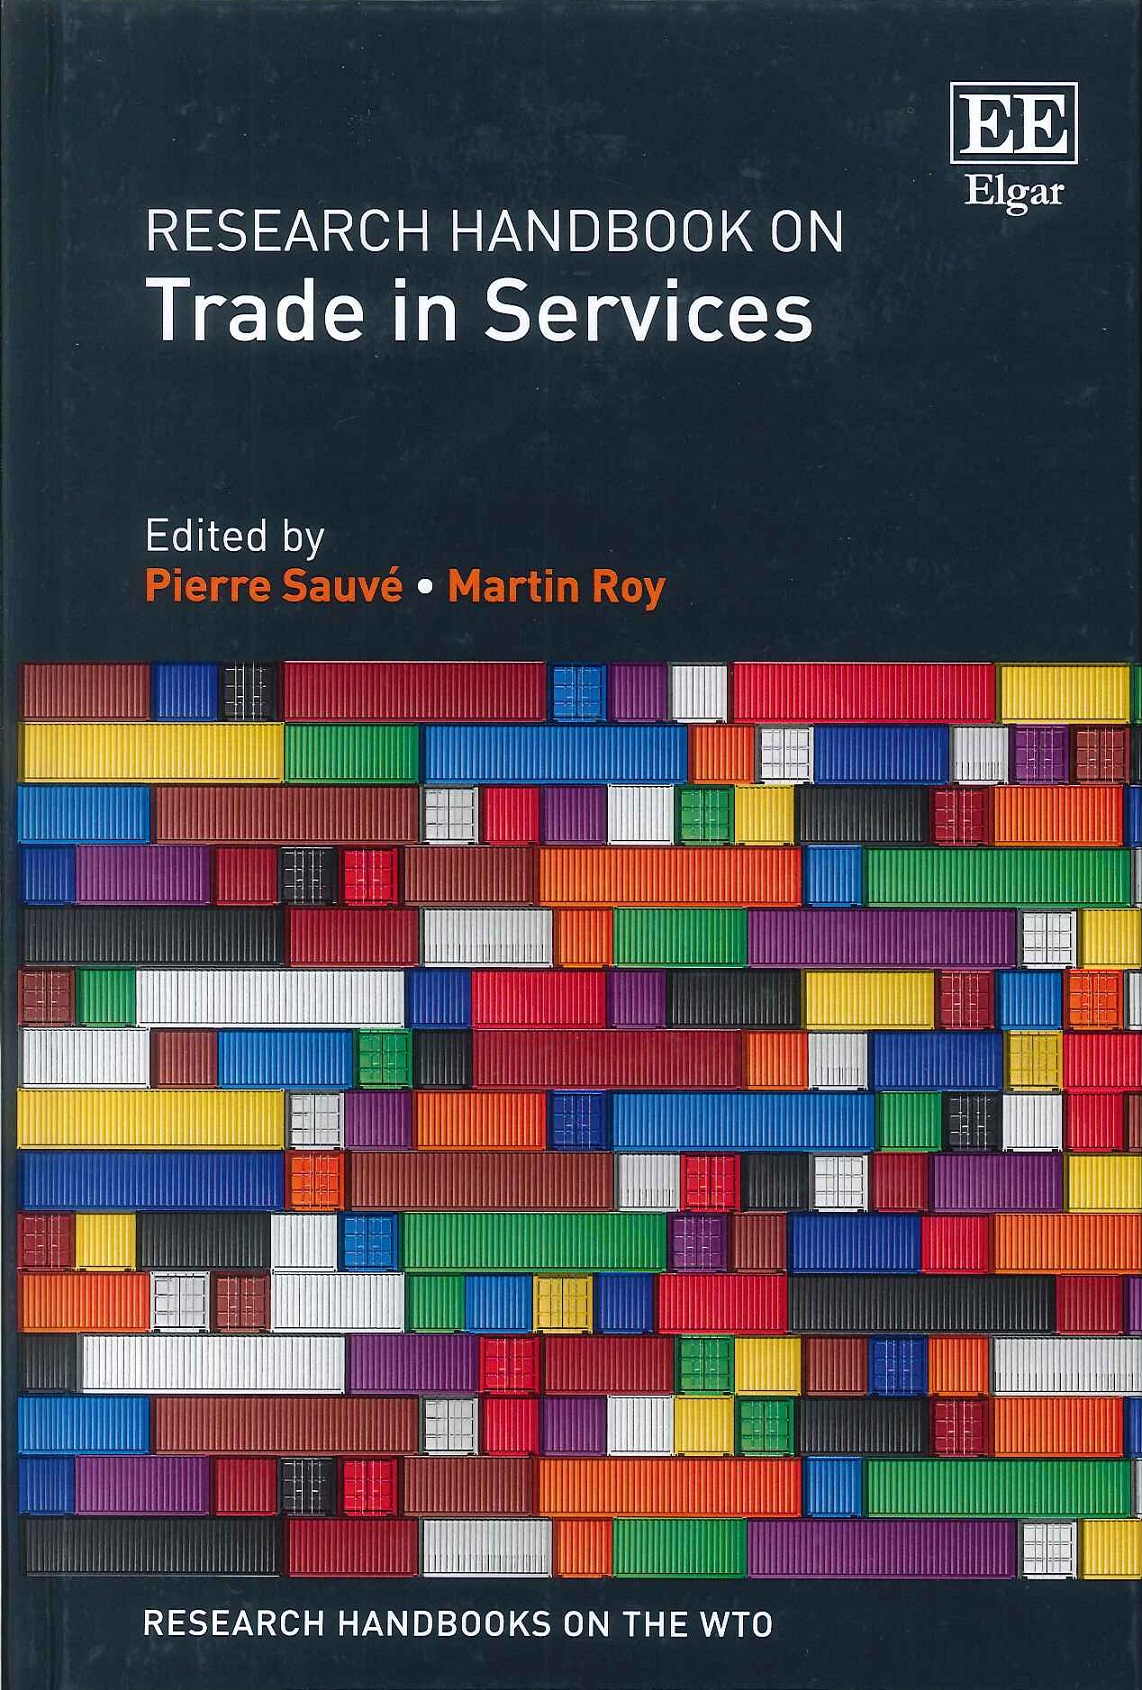 Research handbook on trade in services